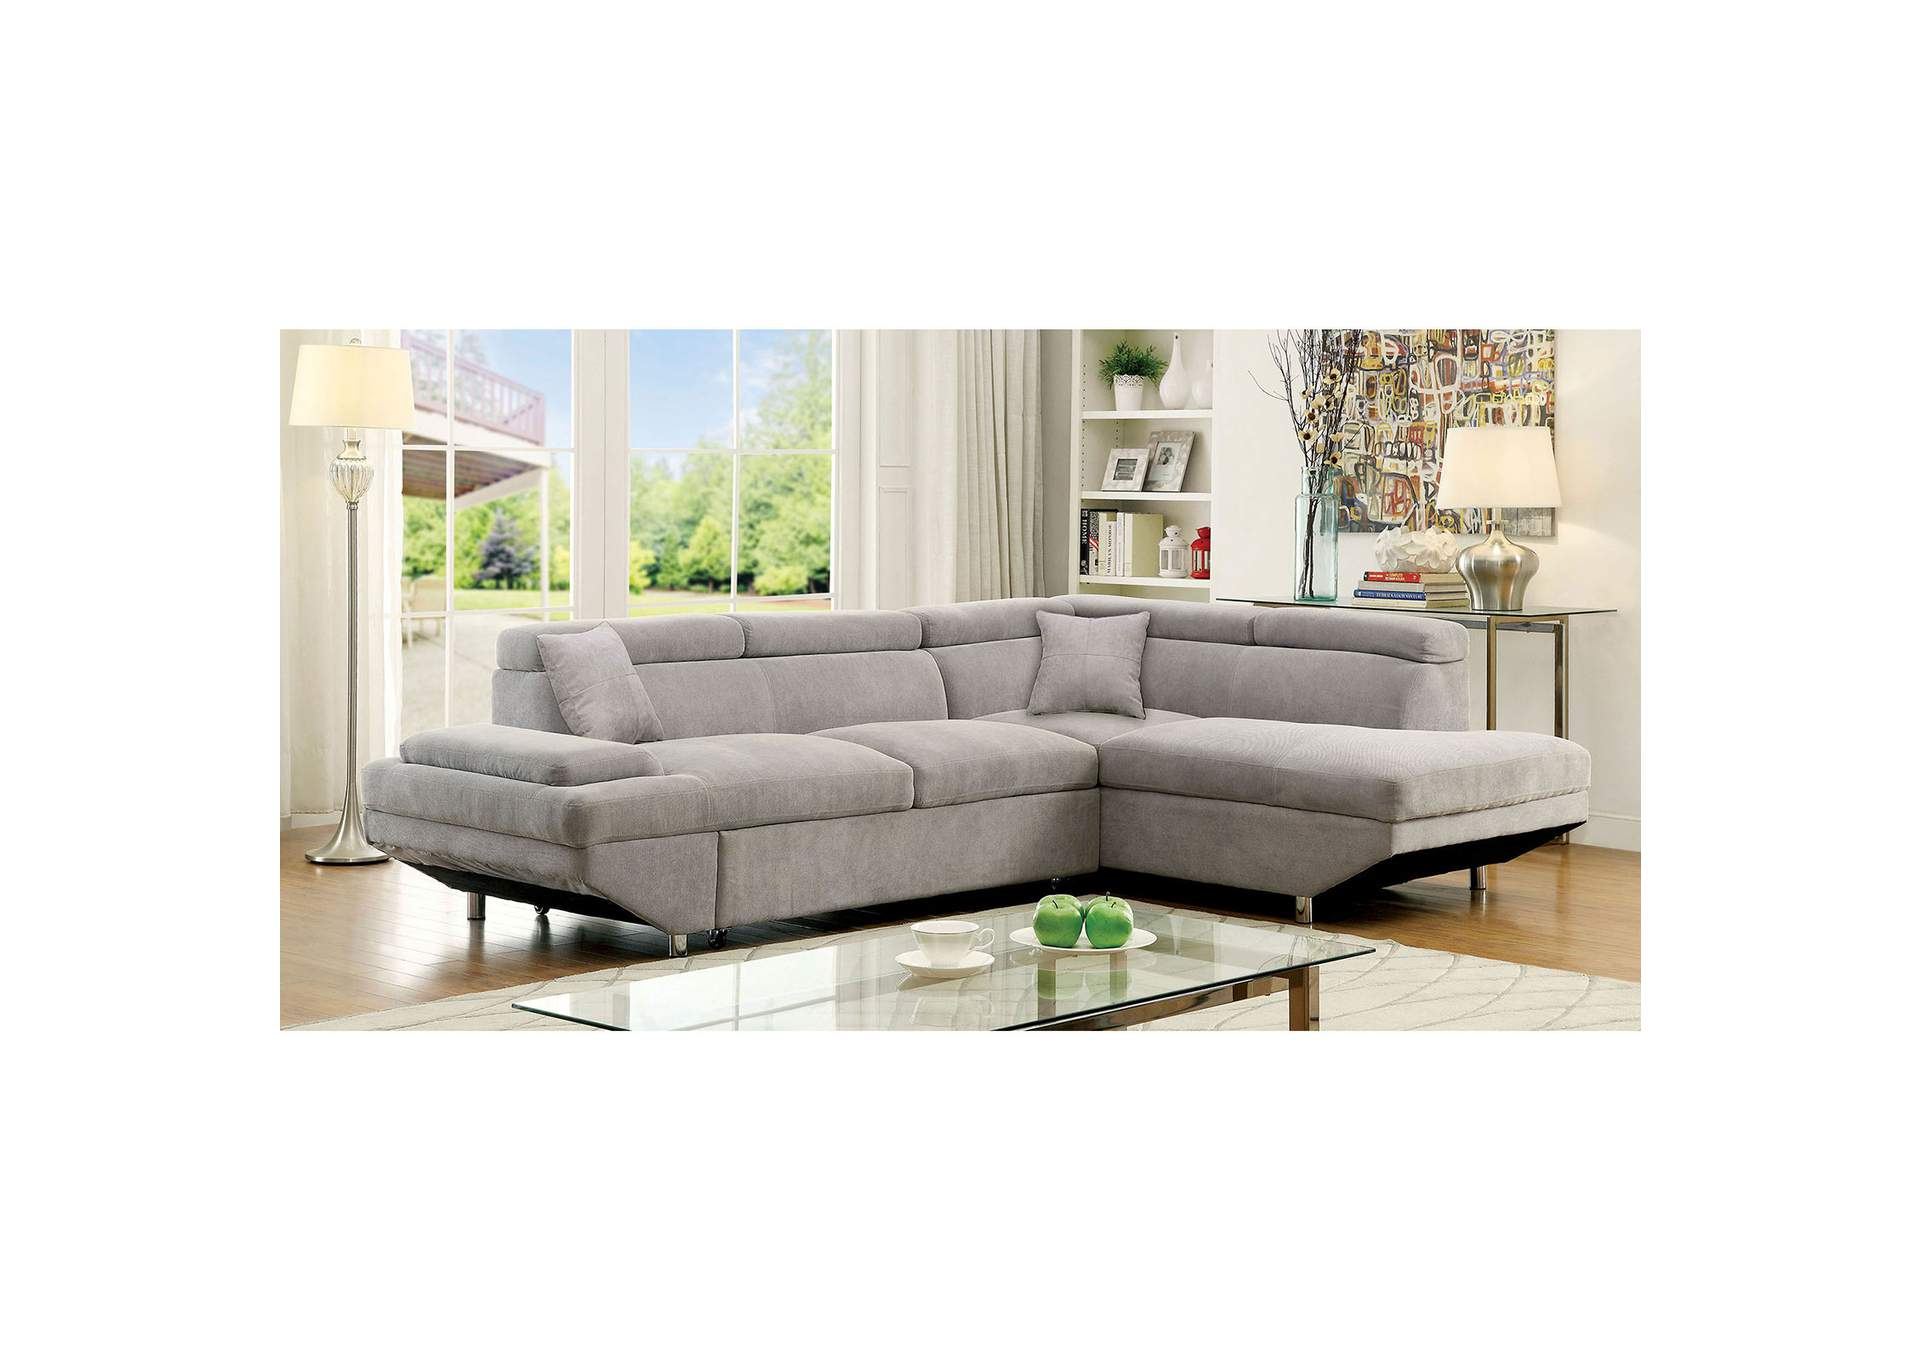 Foreman Gray Sectional,Furniture of America